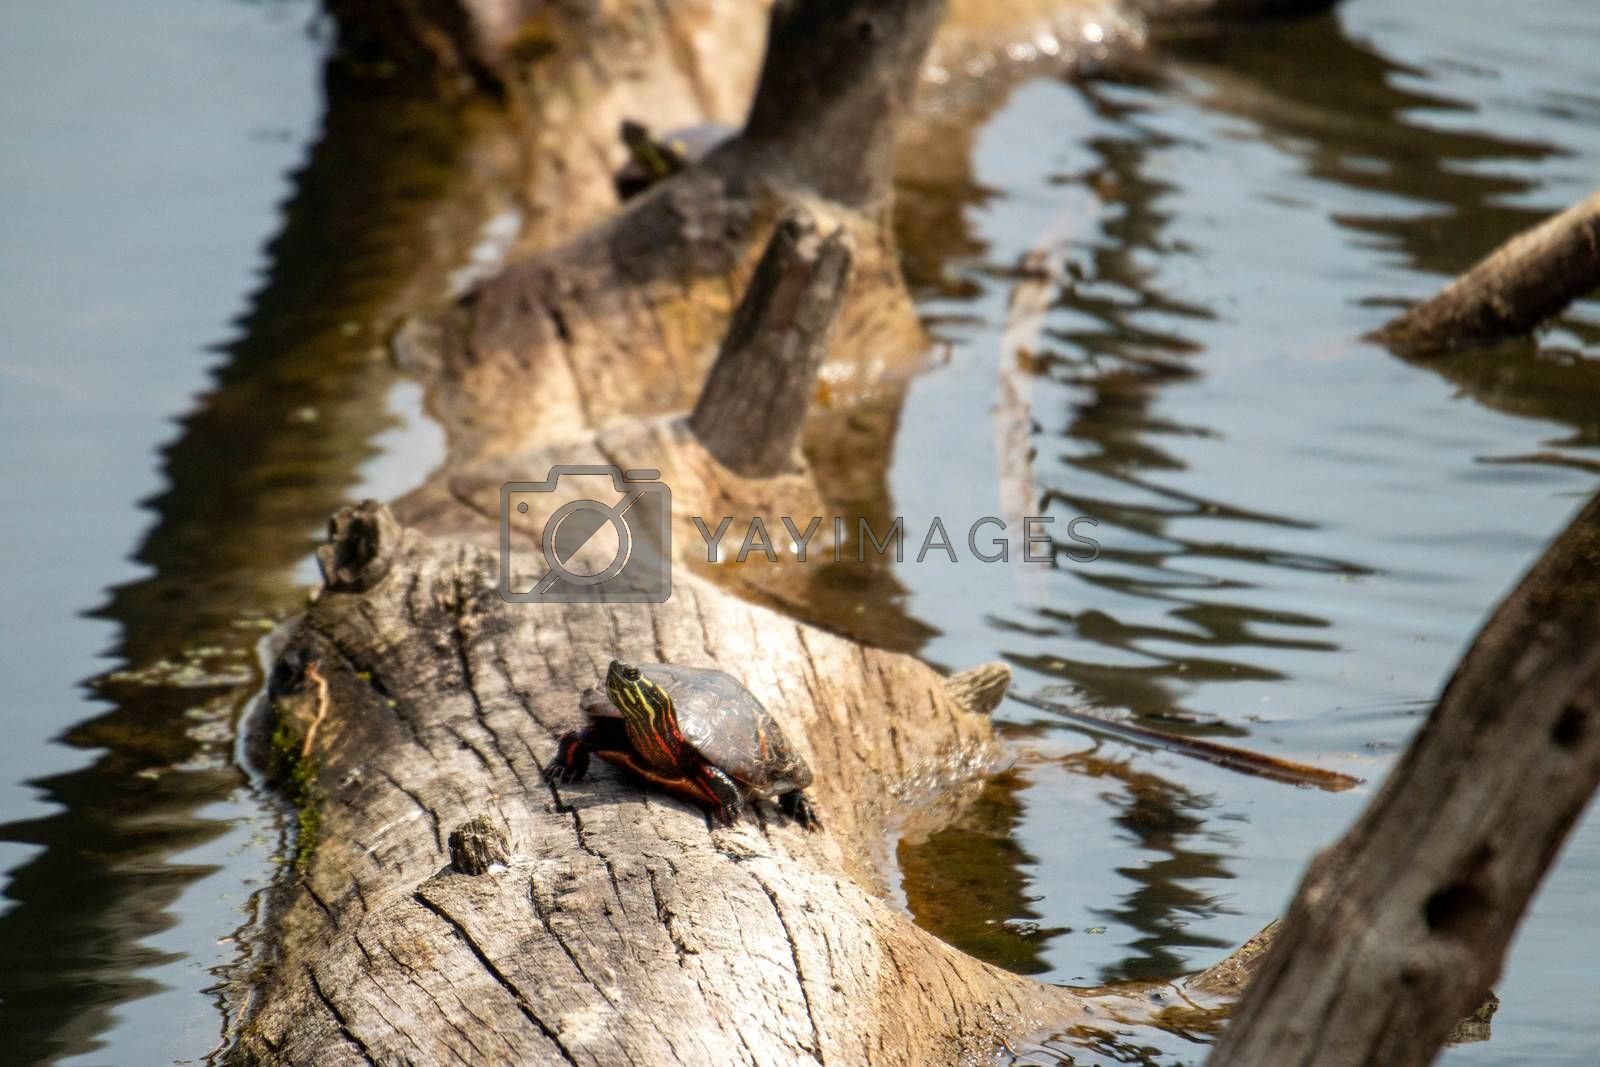 Midland Painted Turtle (Chrysemys picta marginata) Basking on a Log Surrounded by Lily Pads - Pinery Provincial Park, Ontario, Canada